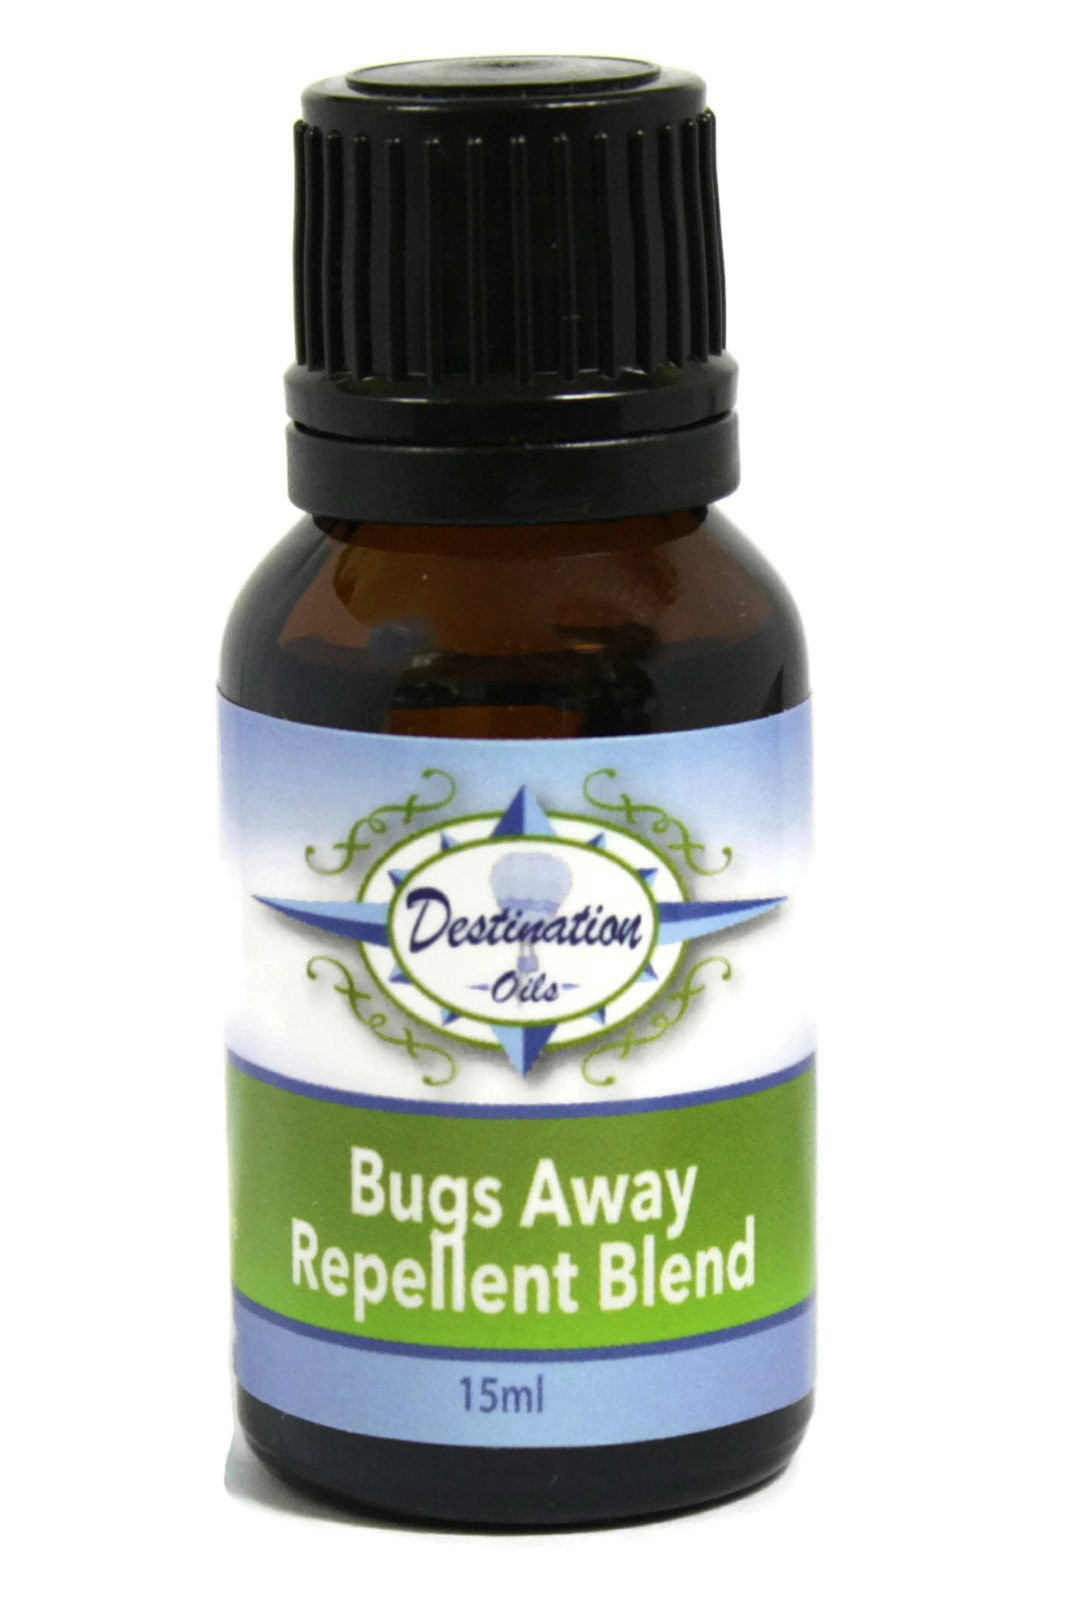 Bugs Away- Insect Repellent Essential Oil Blend - 15ml-Essential Oil Blend-Destination Oils